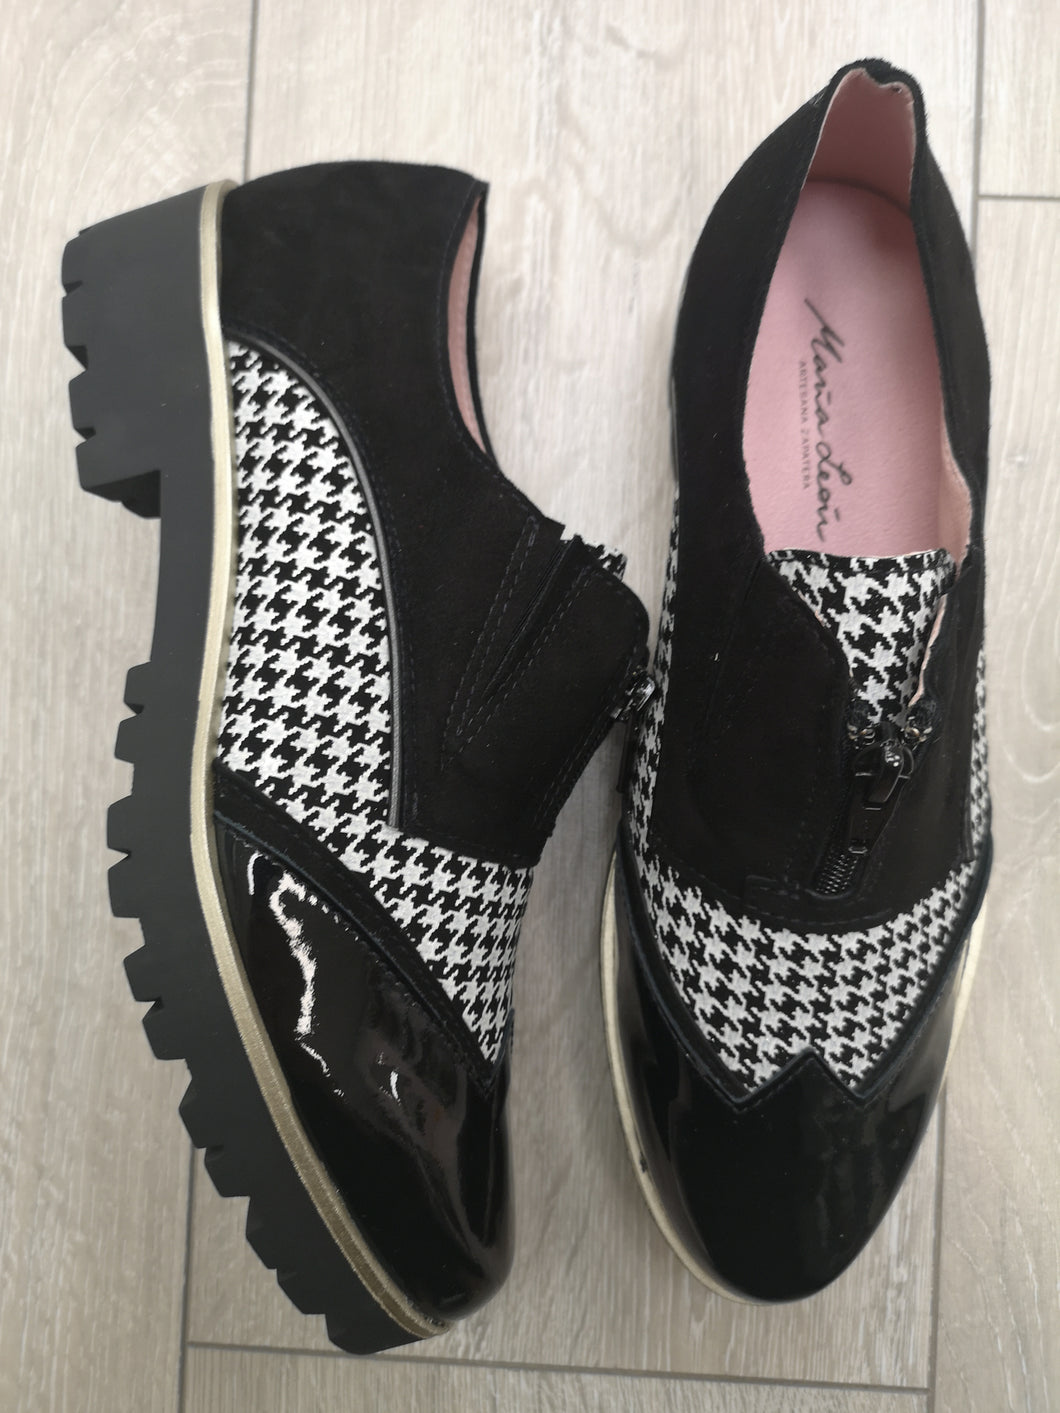 Maria Leon Black Houndstooth Shoes